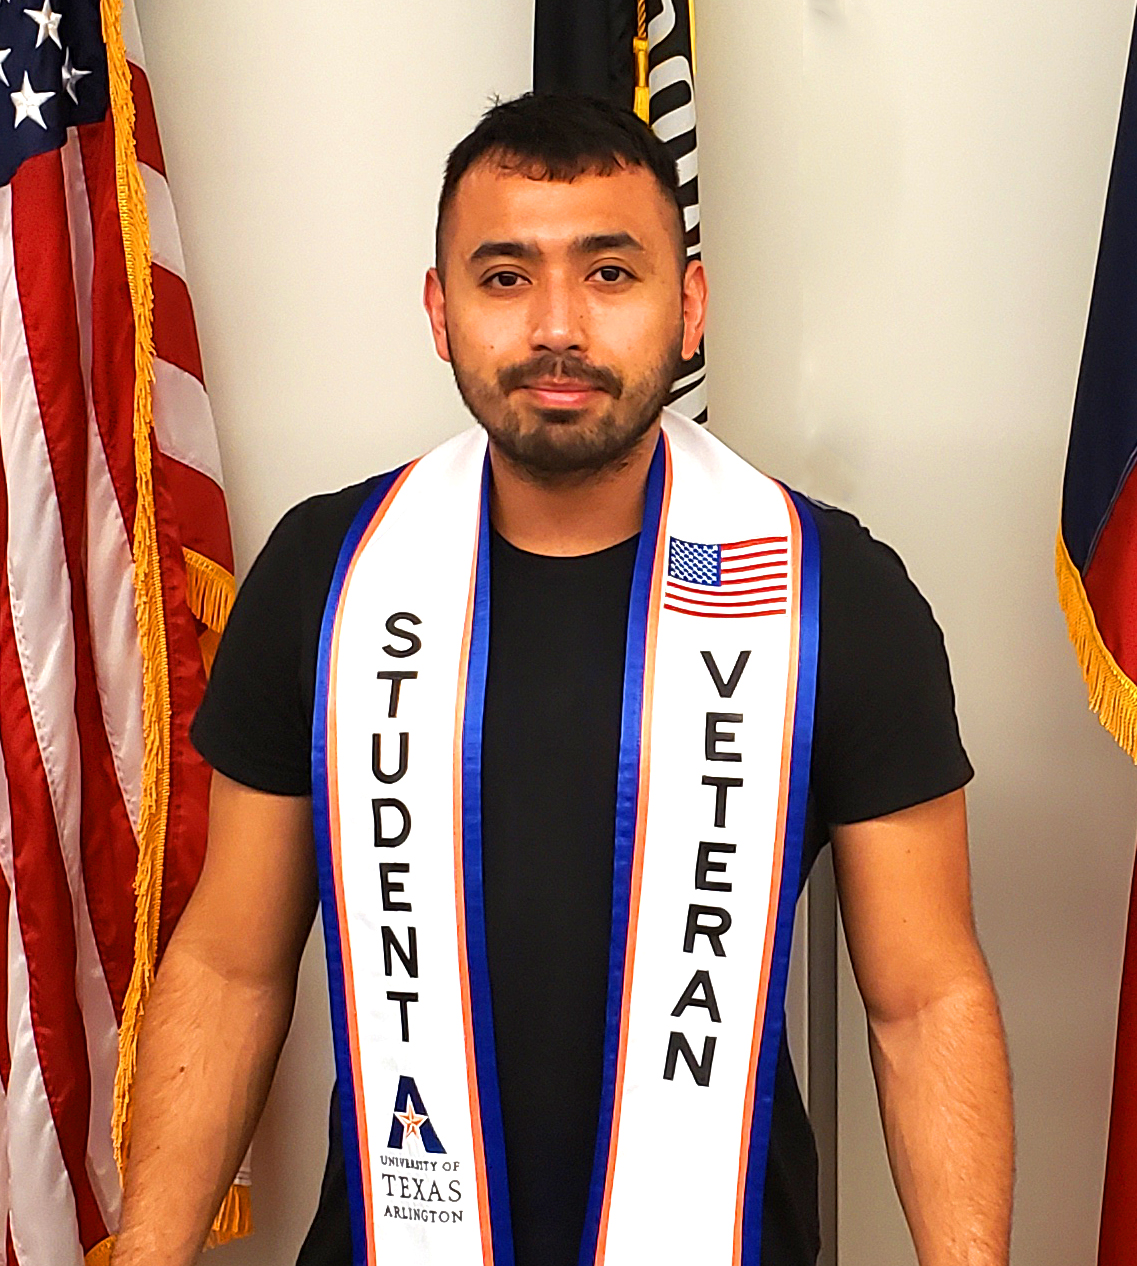 """Student wearing a graduation stole that says """"Student Veteran"""" on it."""